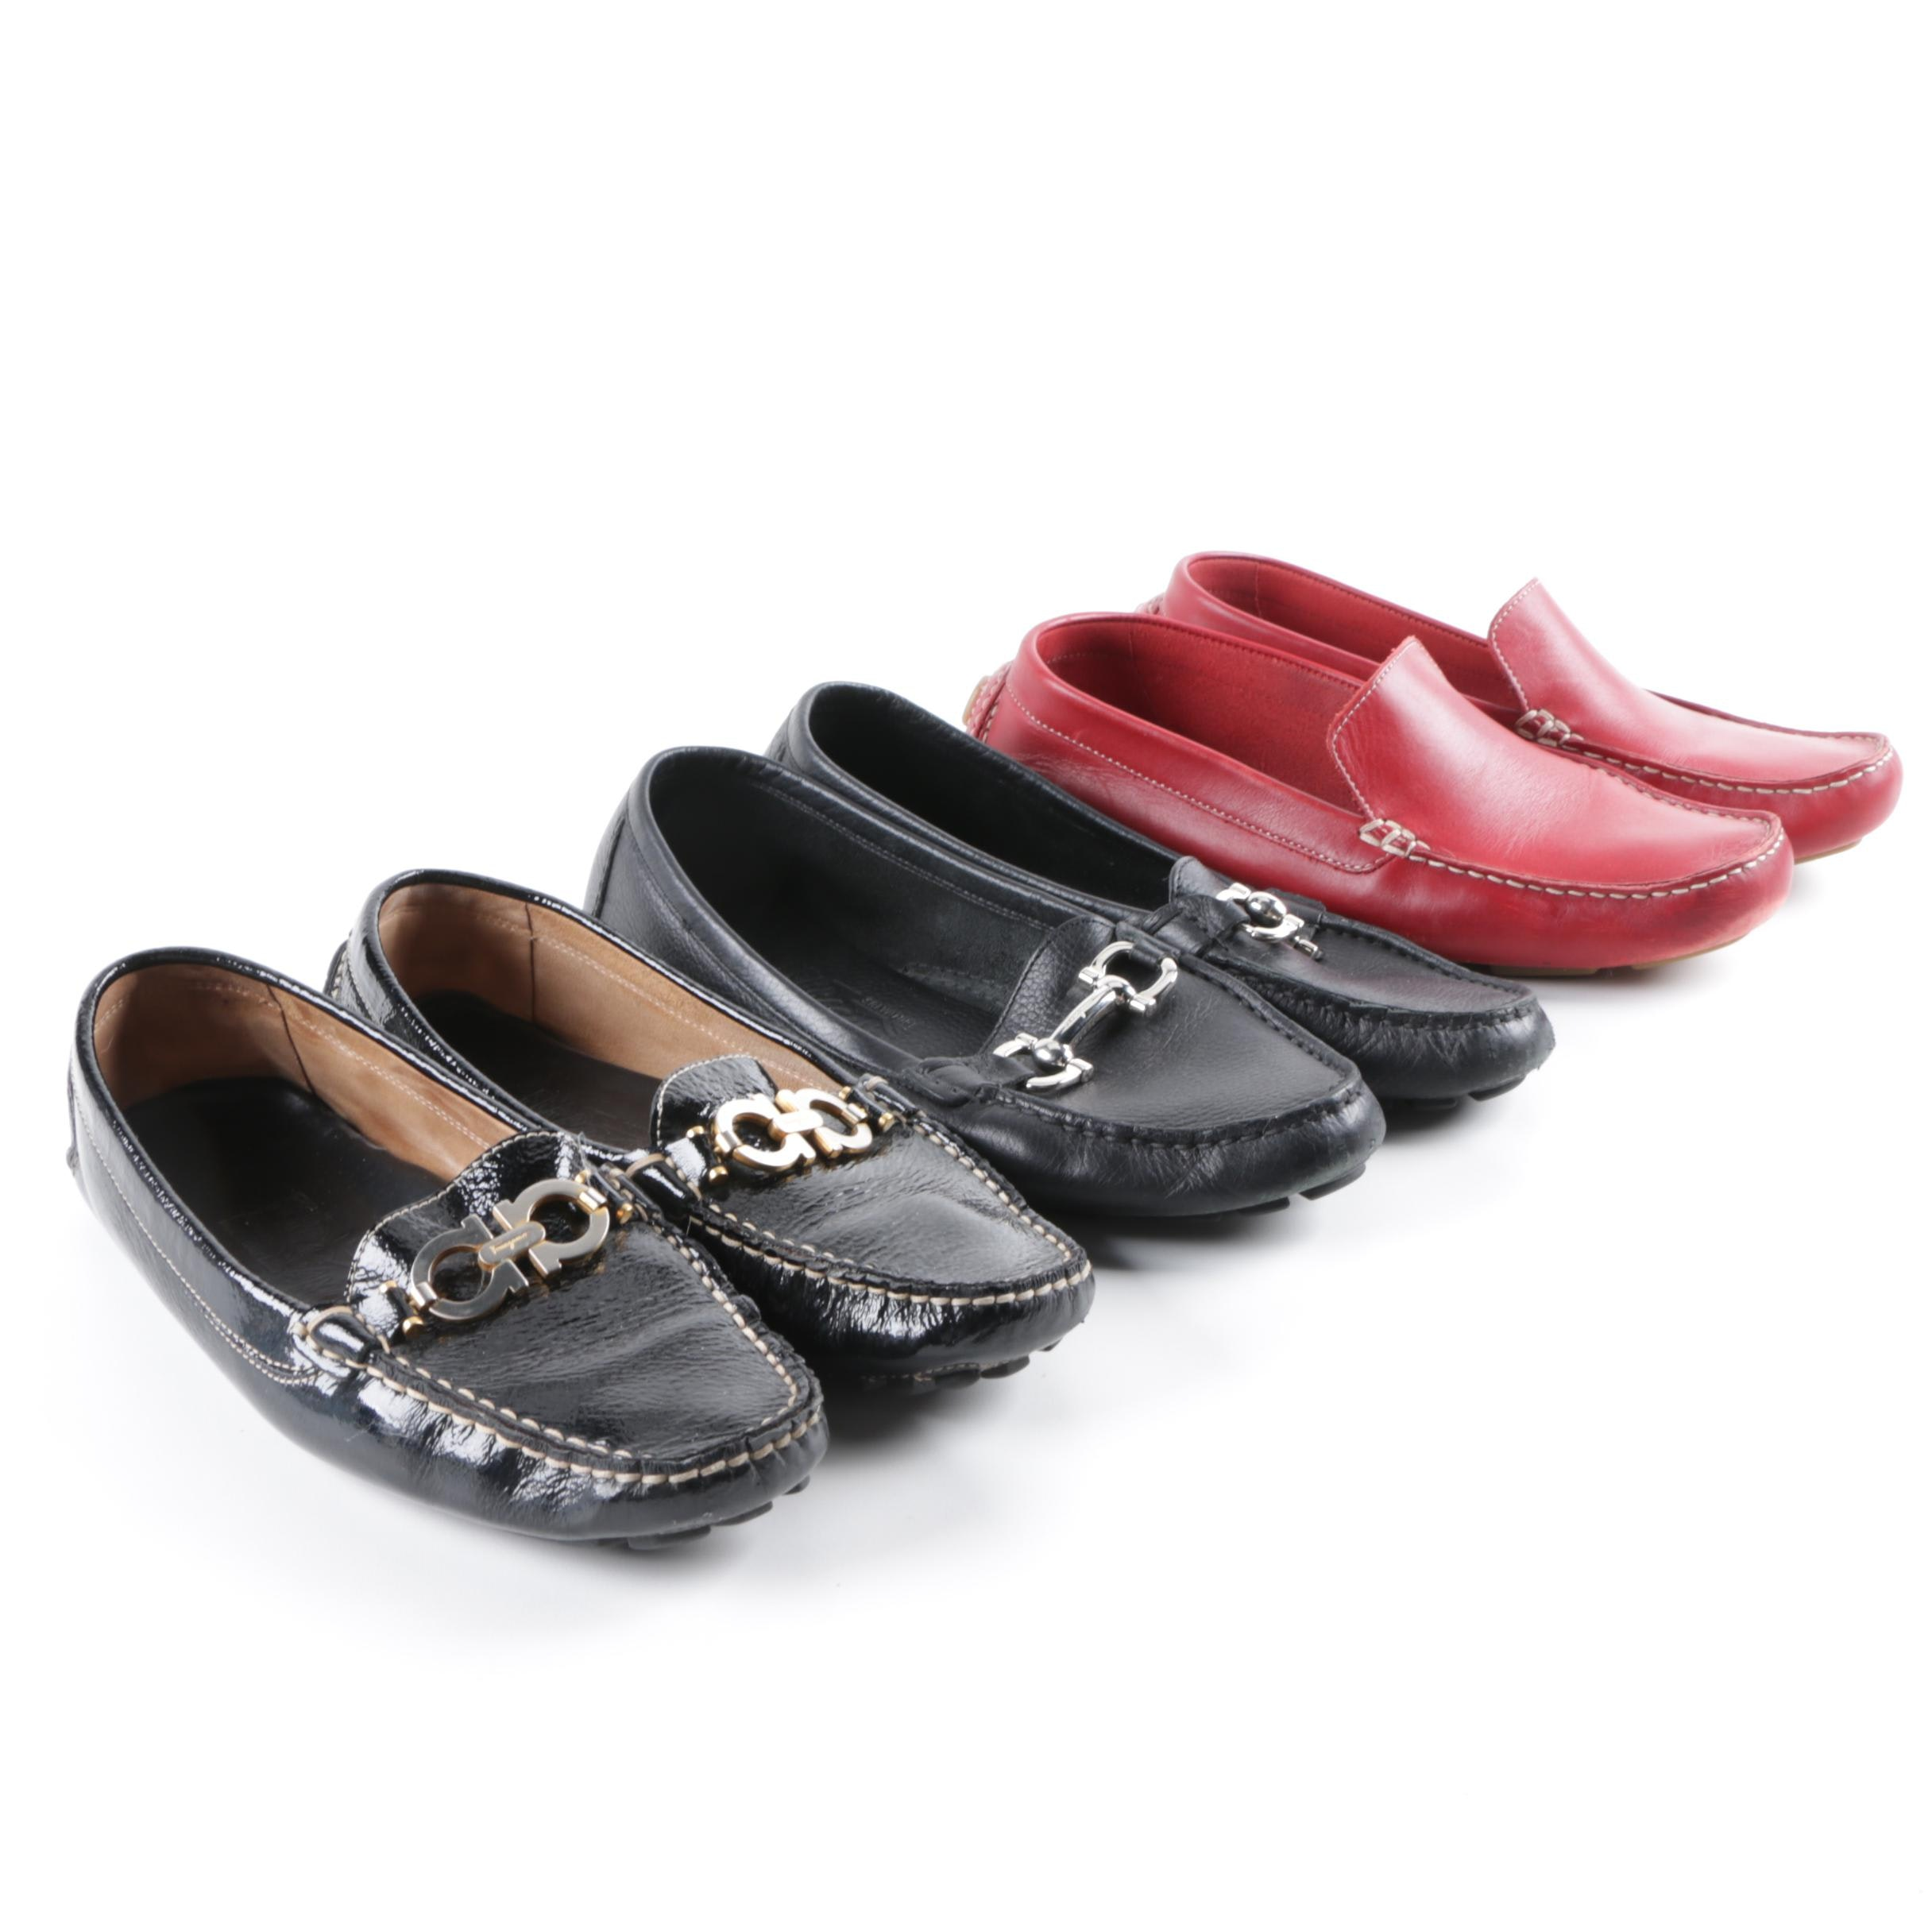 Women's Leather Loafers Including Salvatore Ferragamo